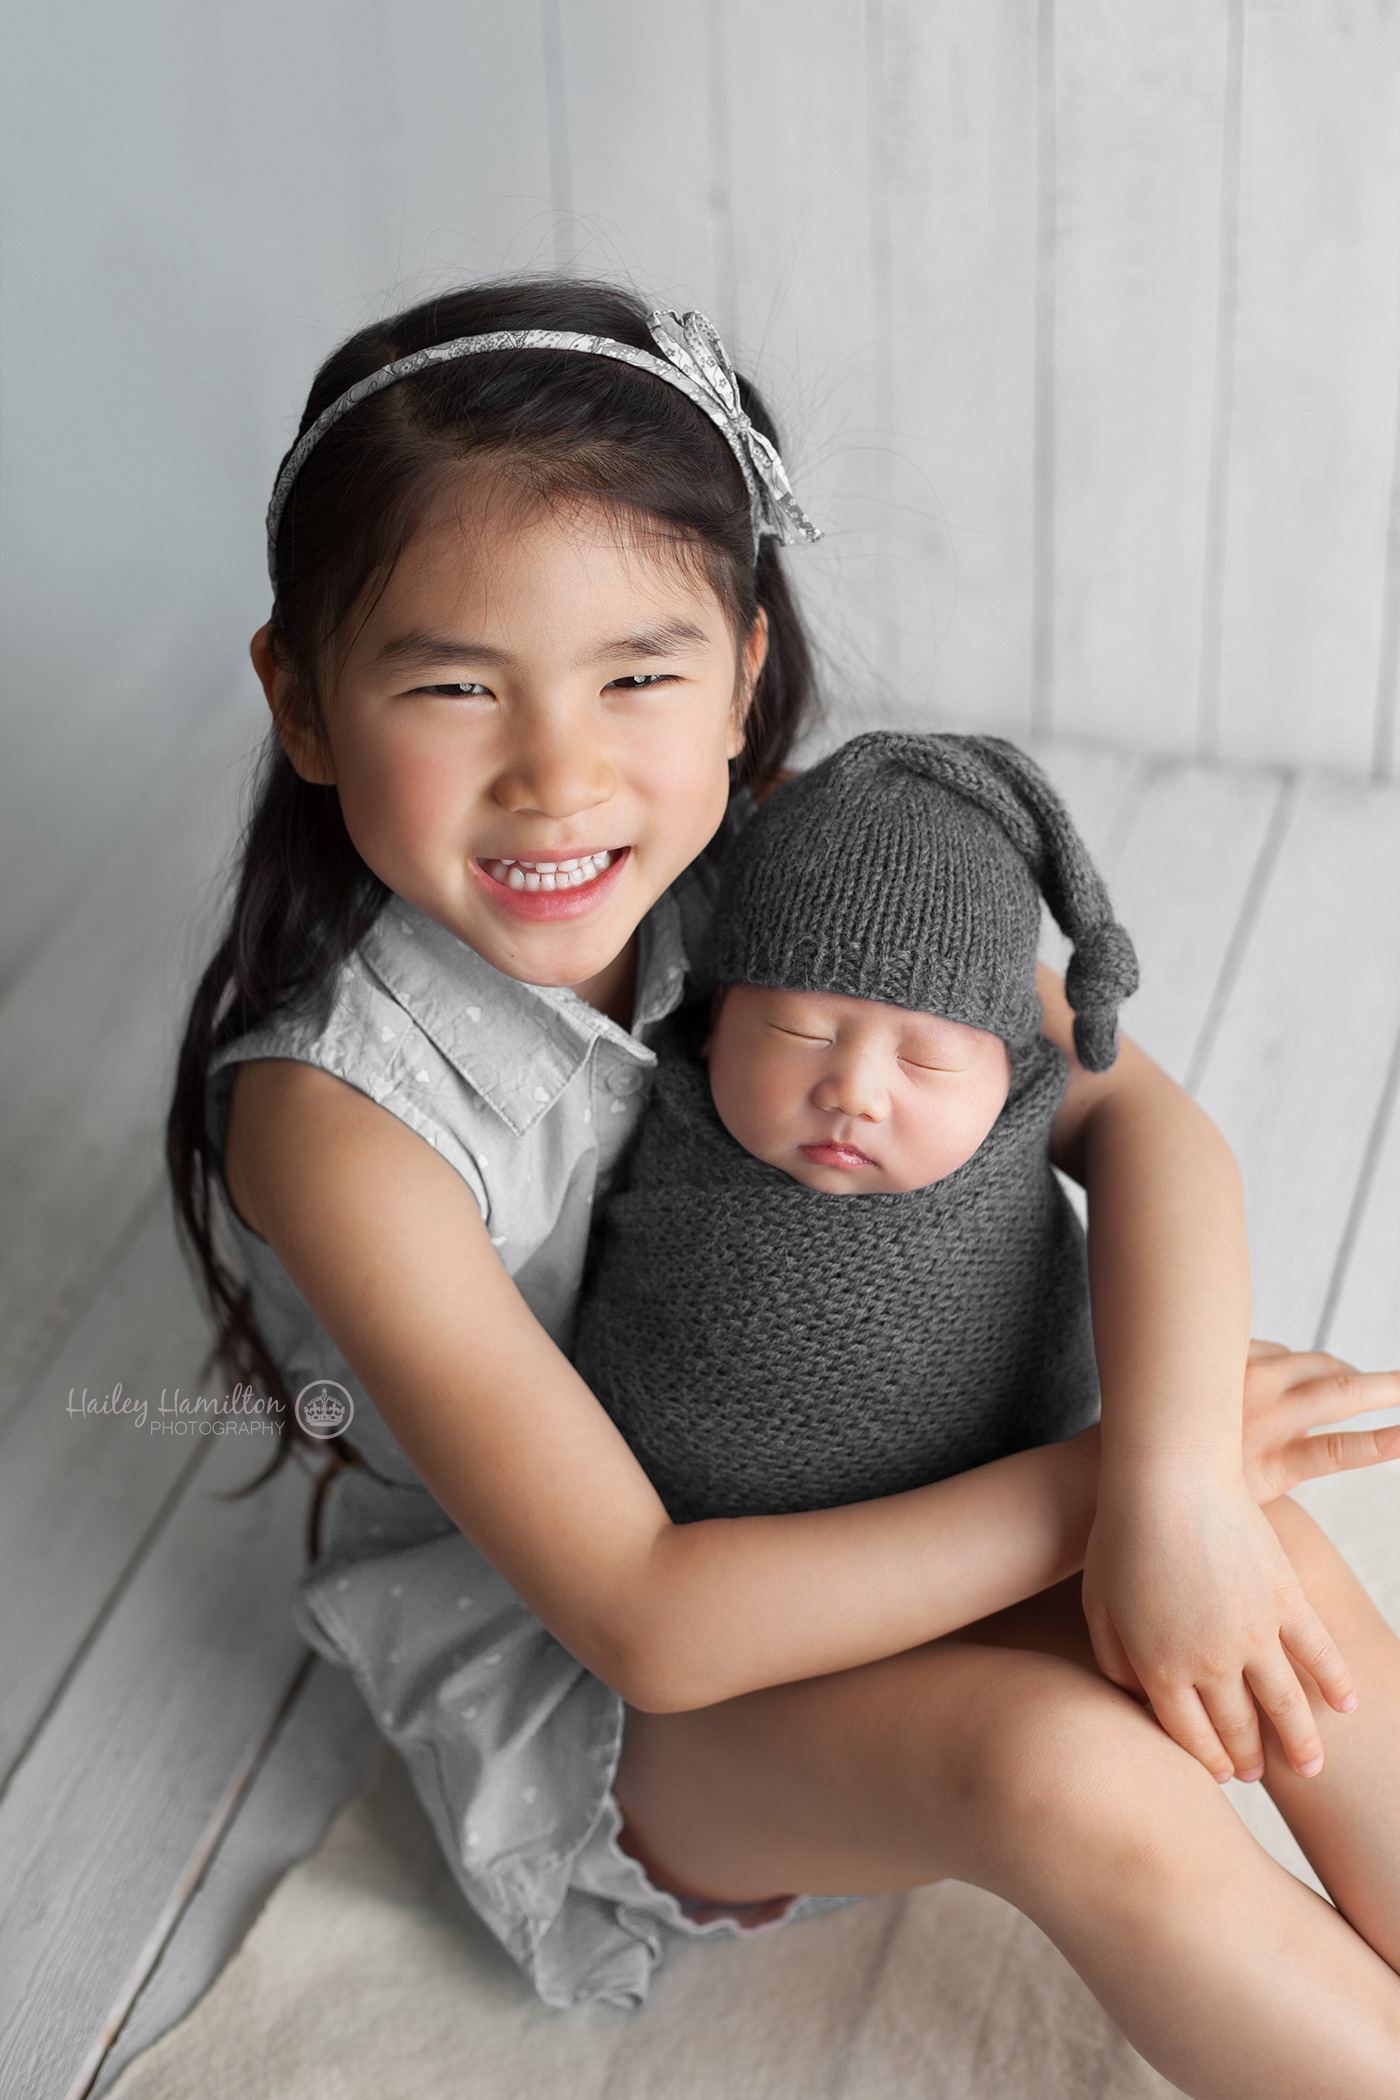 Big sister with newborn baby brother